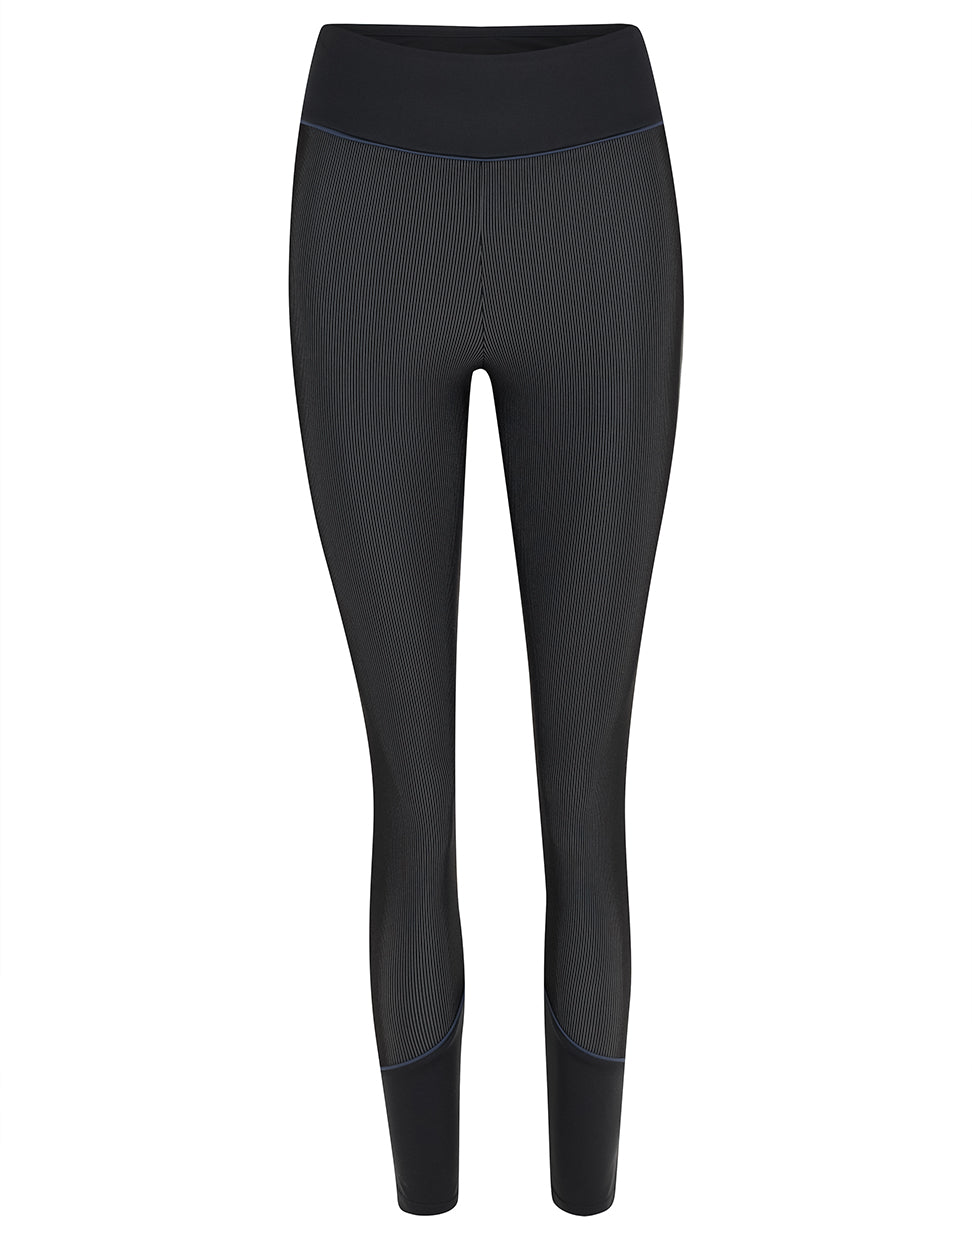 Legging Queen Preto